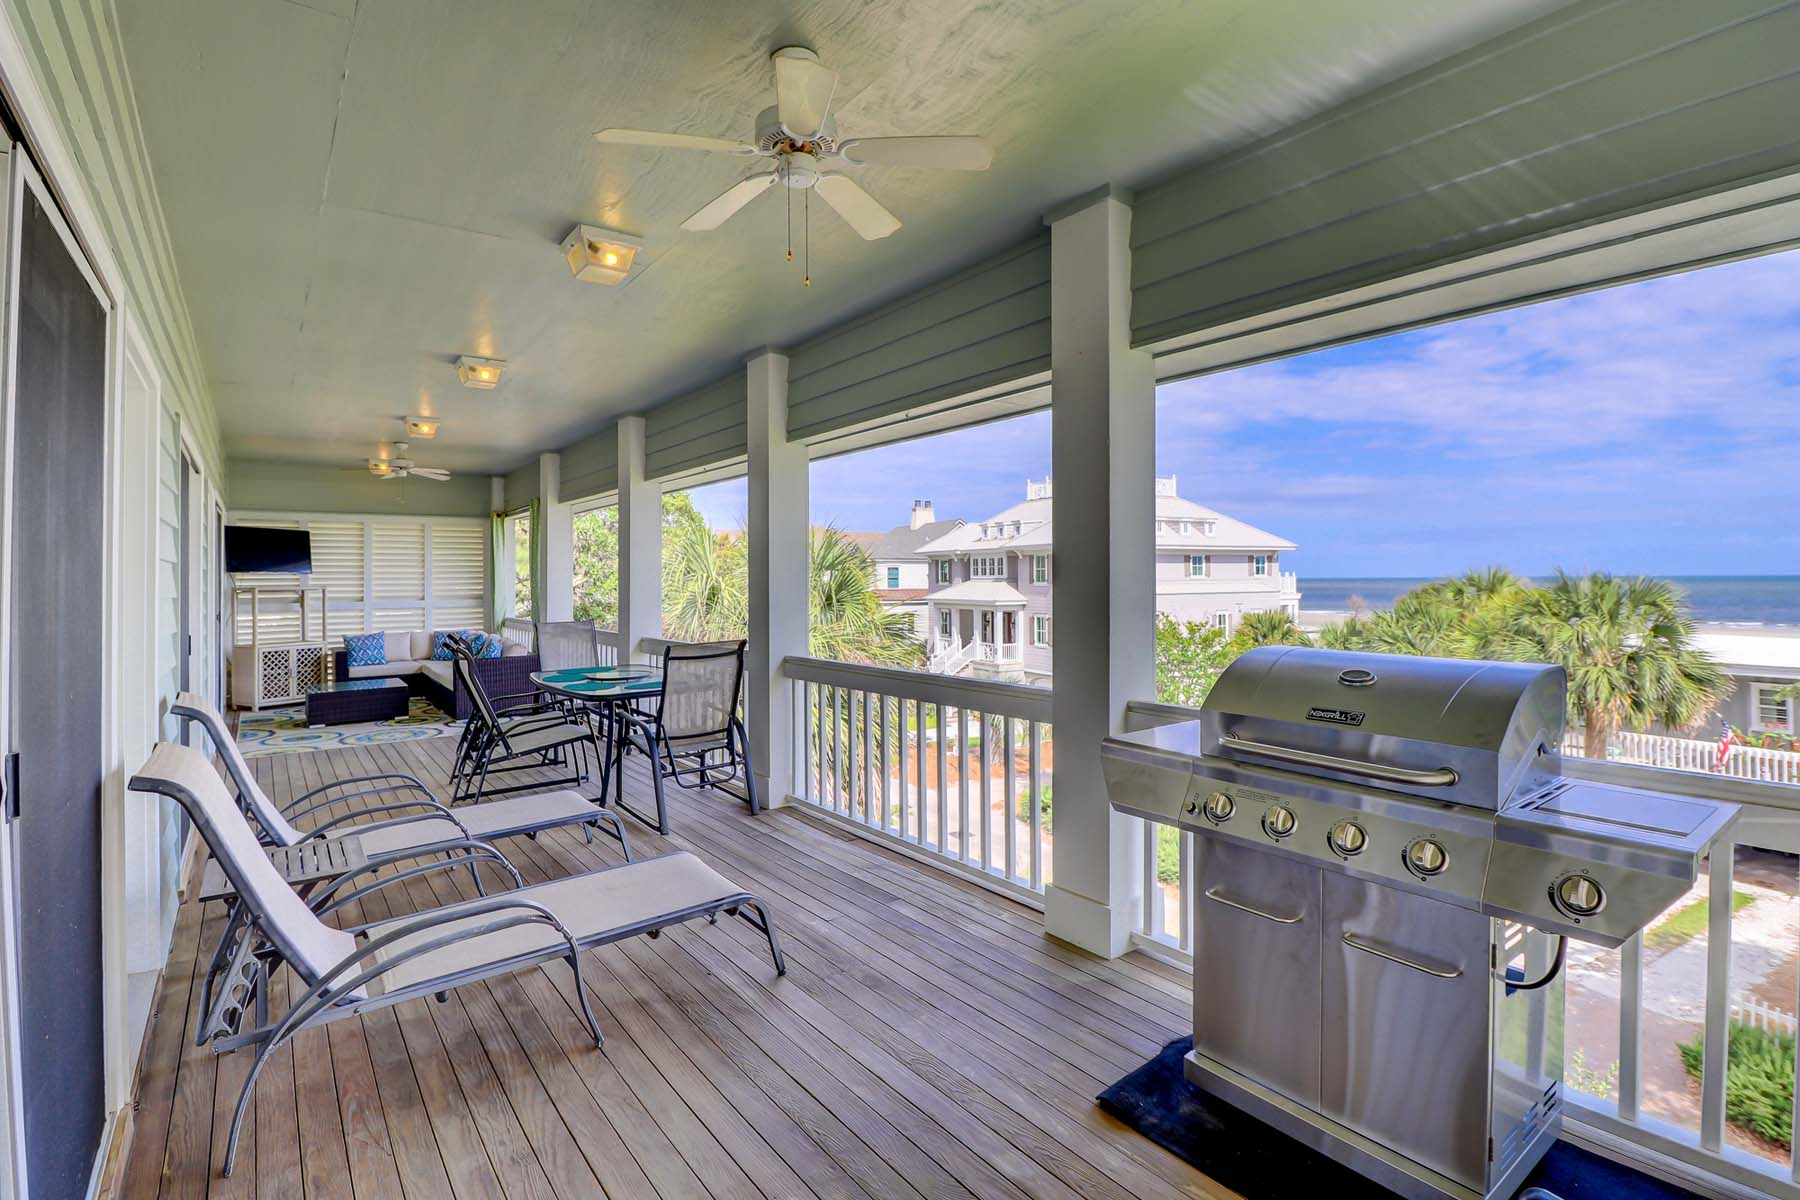 3 burner gas grill, ample seating, staring at the ocean.... Island life is the best life!